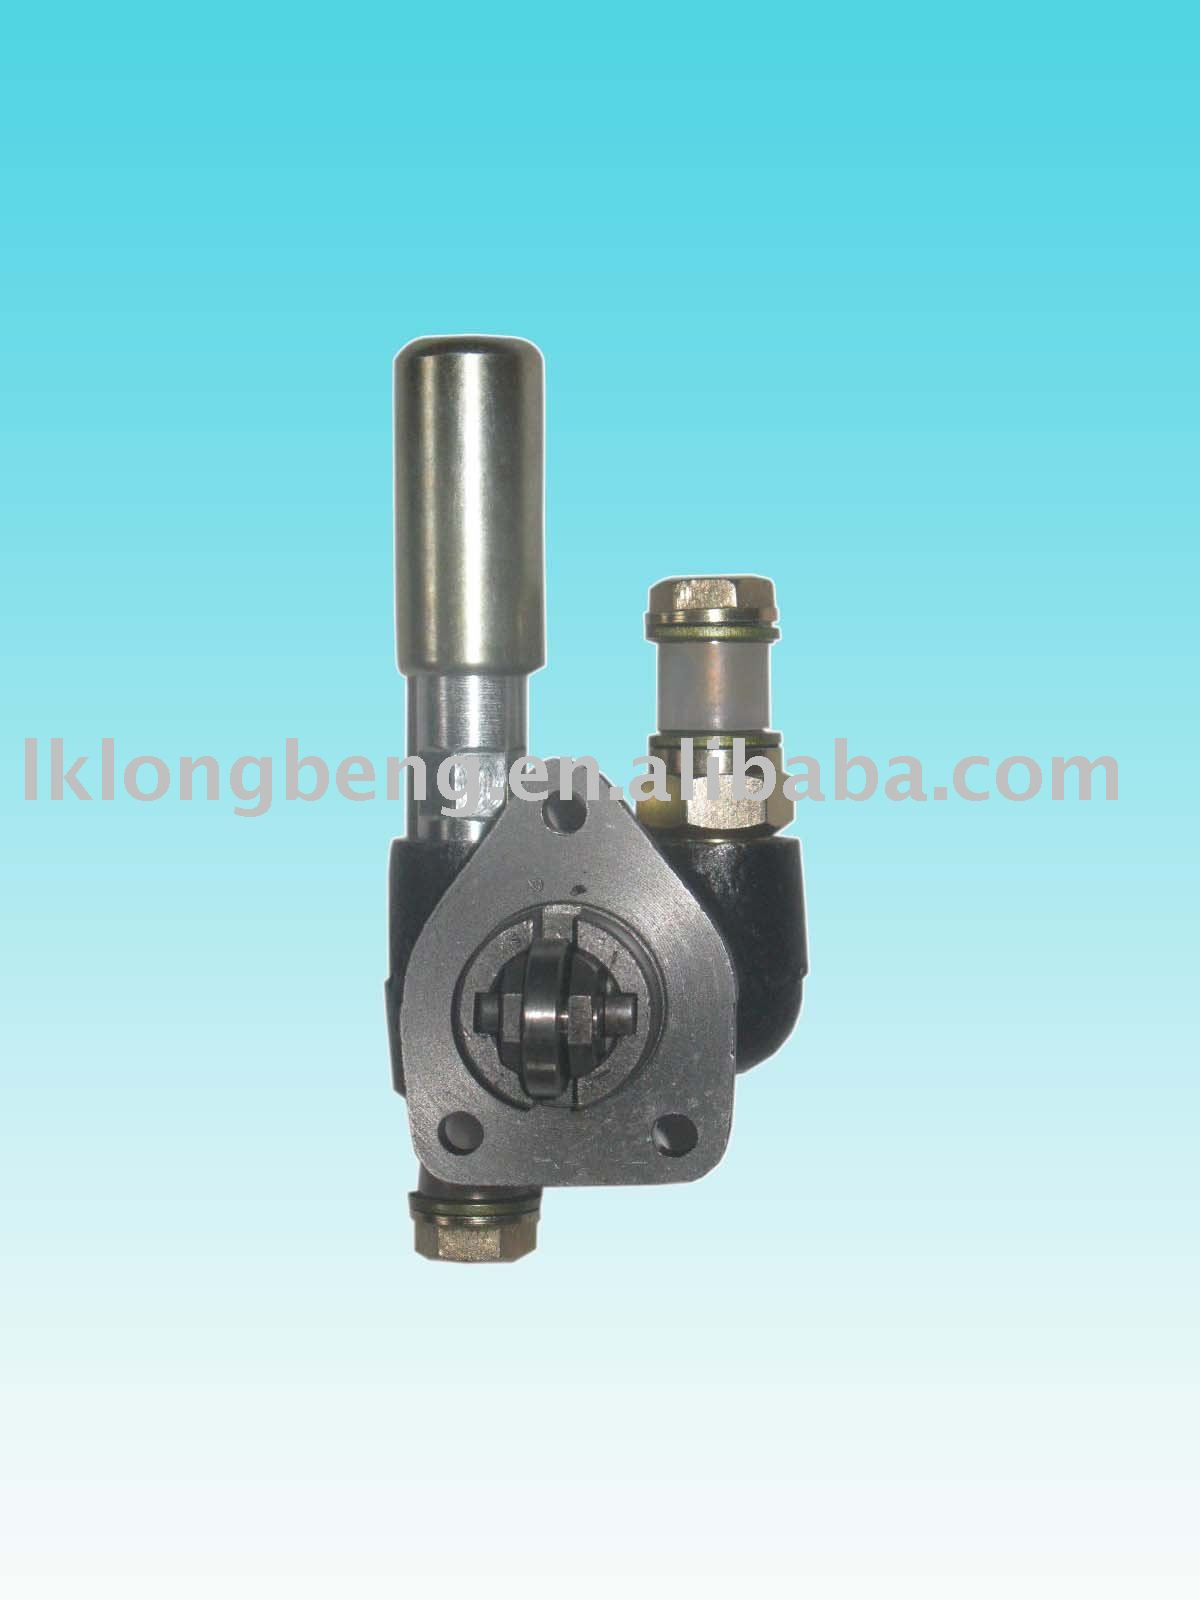 S306 Fuel supply pump